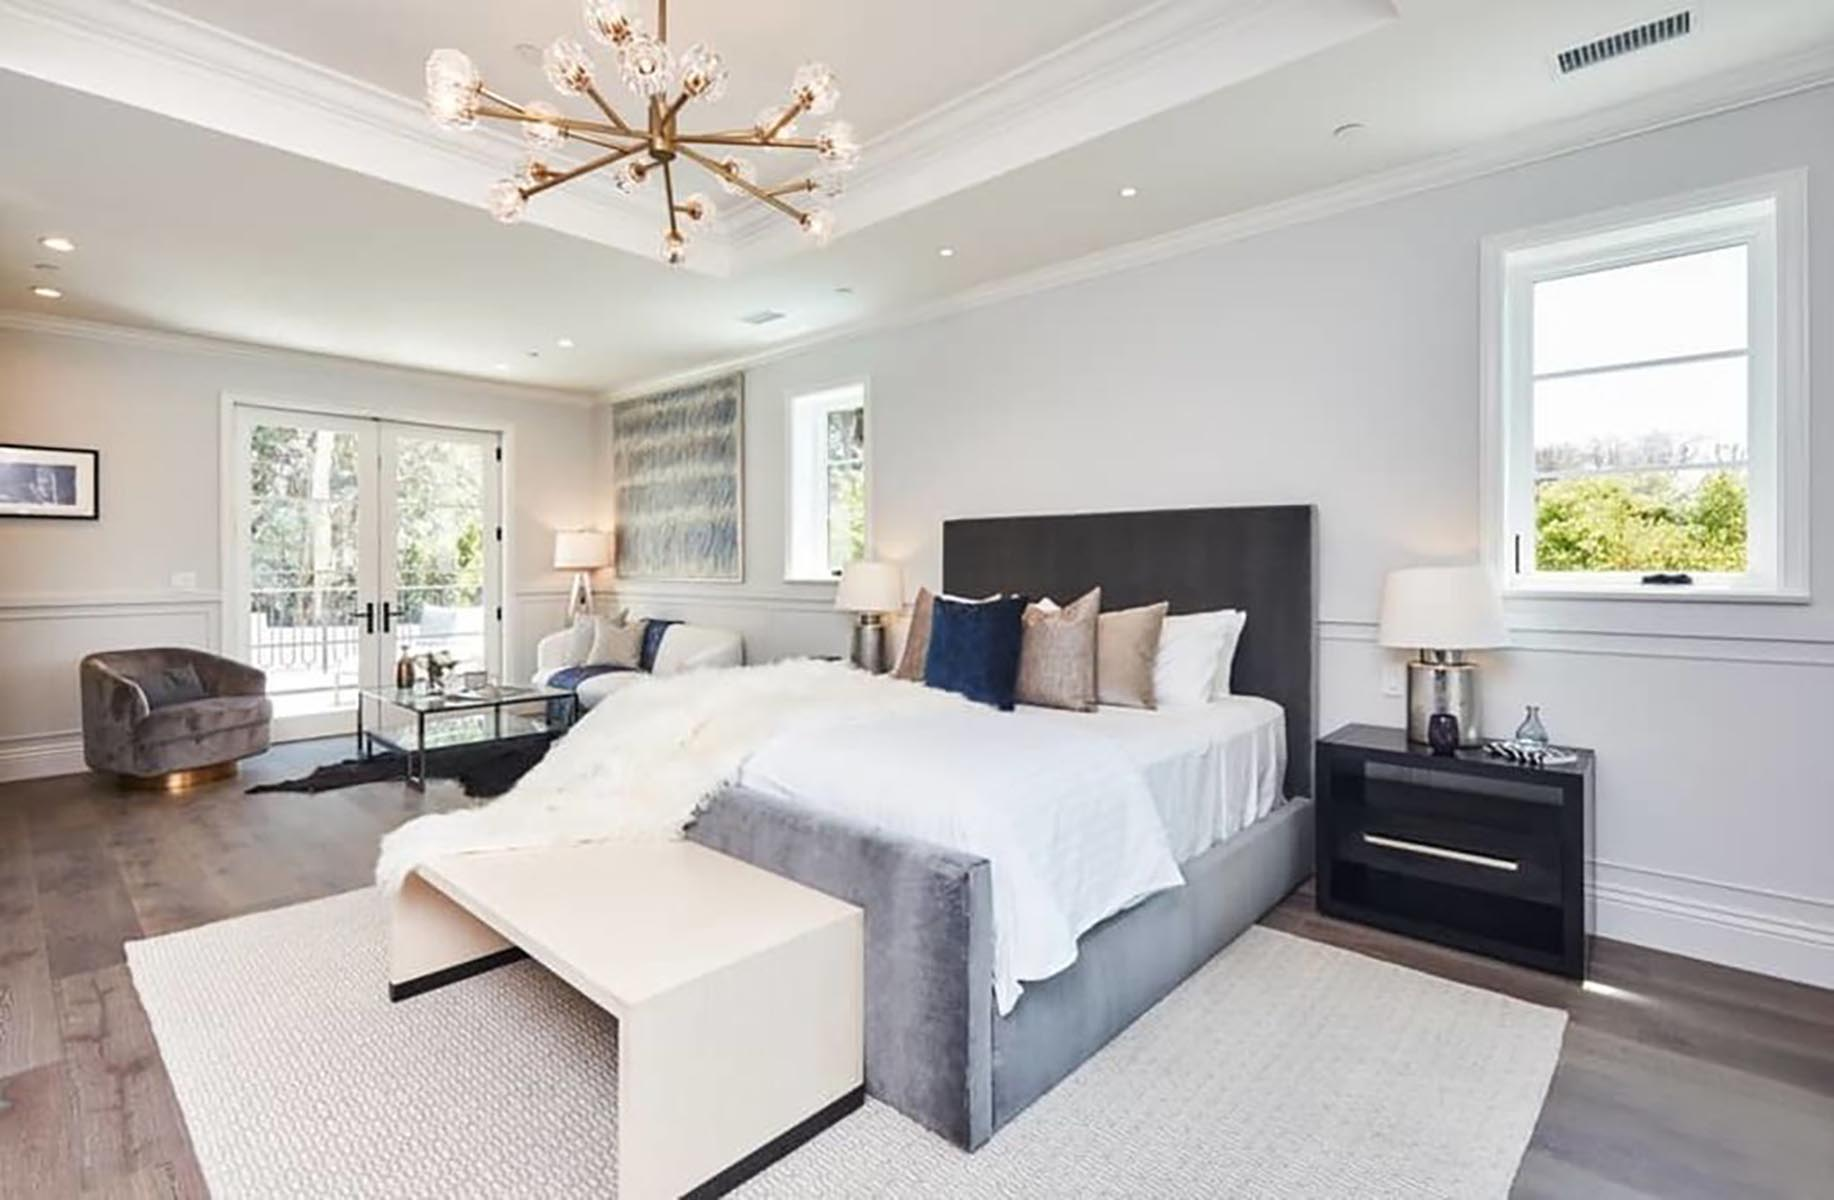 Architect home addition and remodel French contemporary style master bedroom 2